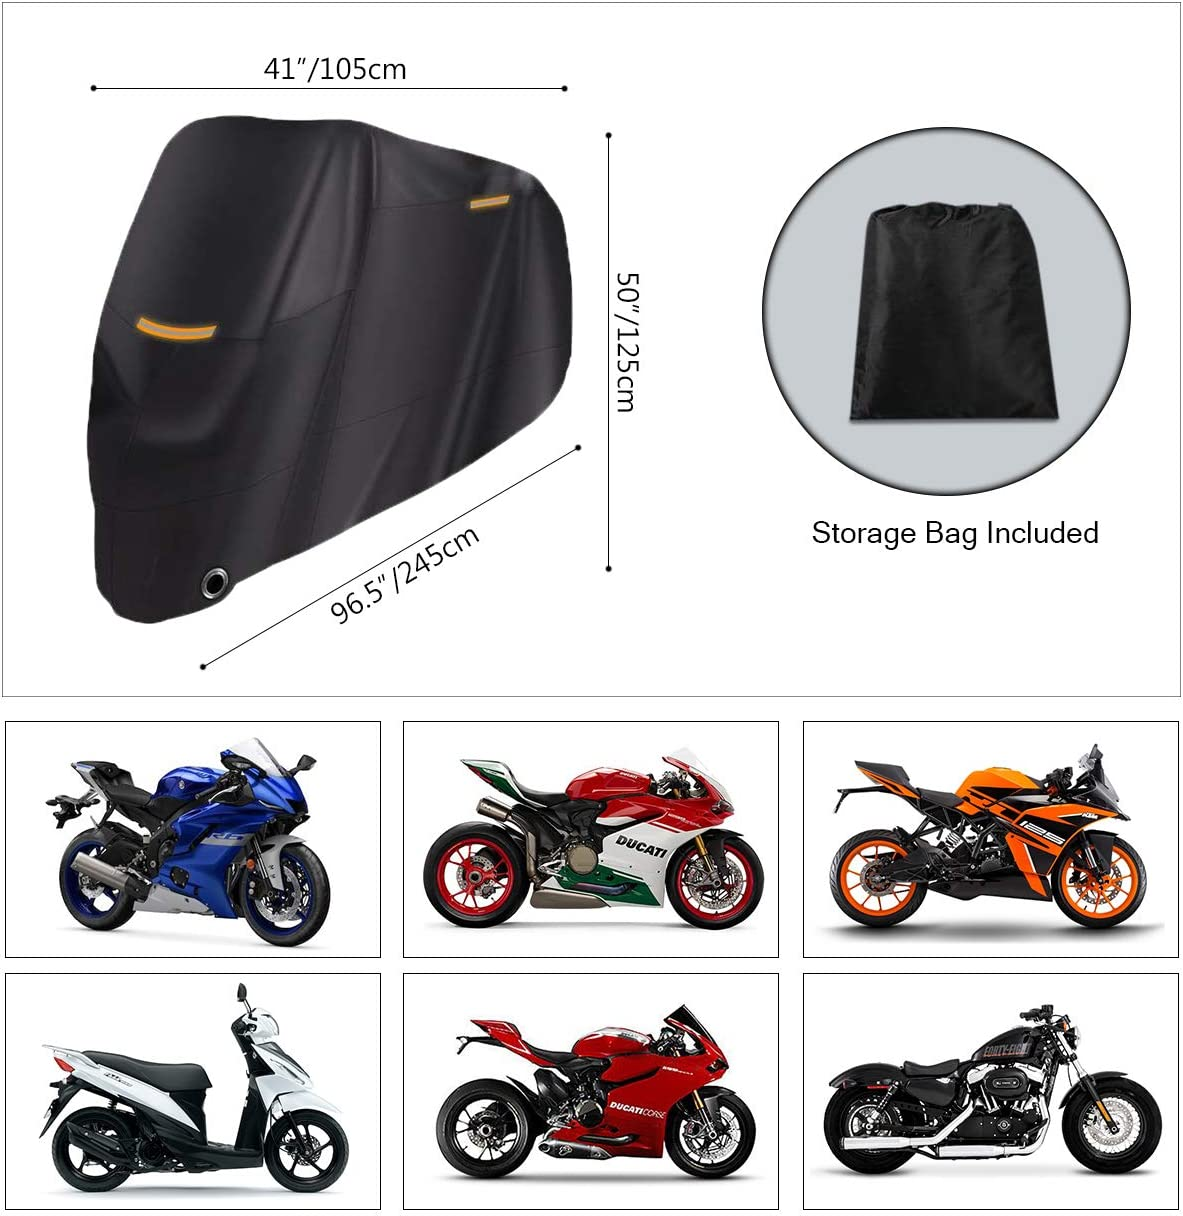 Riider Original Premium Quality Outdoor Waterproof Motorcycle Cover Heavy Duty Durable Thick 210D Fabric Motorbike Cover All Season Anti UV Scratch Heat-Resistant Outdoor Protection 96.5x41x50inch